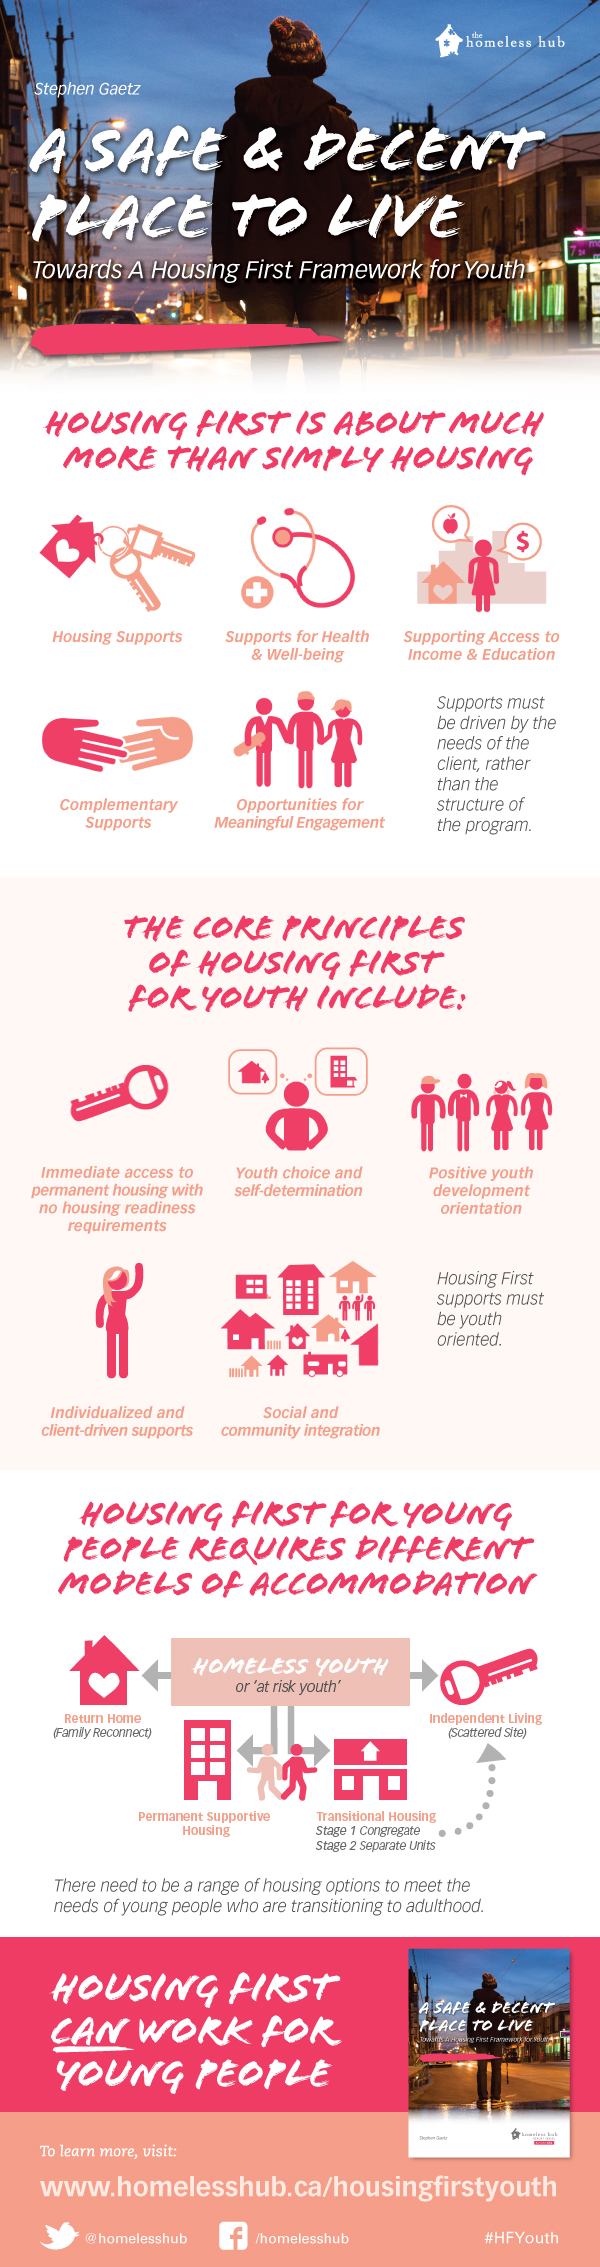 A Safe and Decent Place to Live: Towards a Housing First Framework for Youth infographic